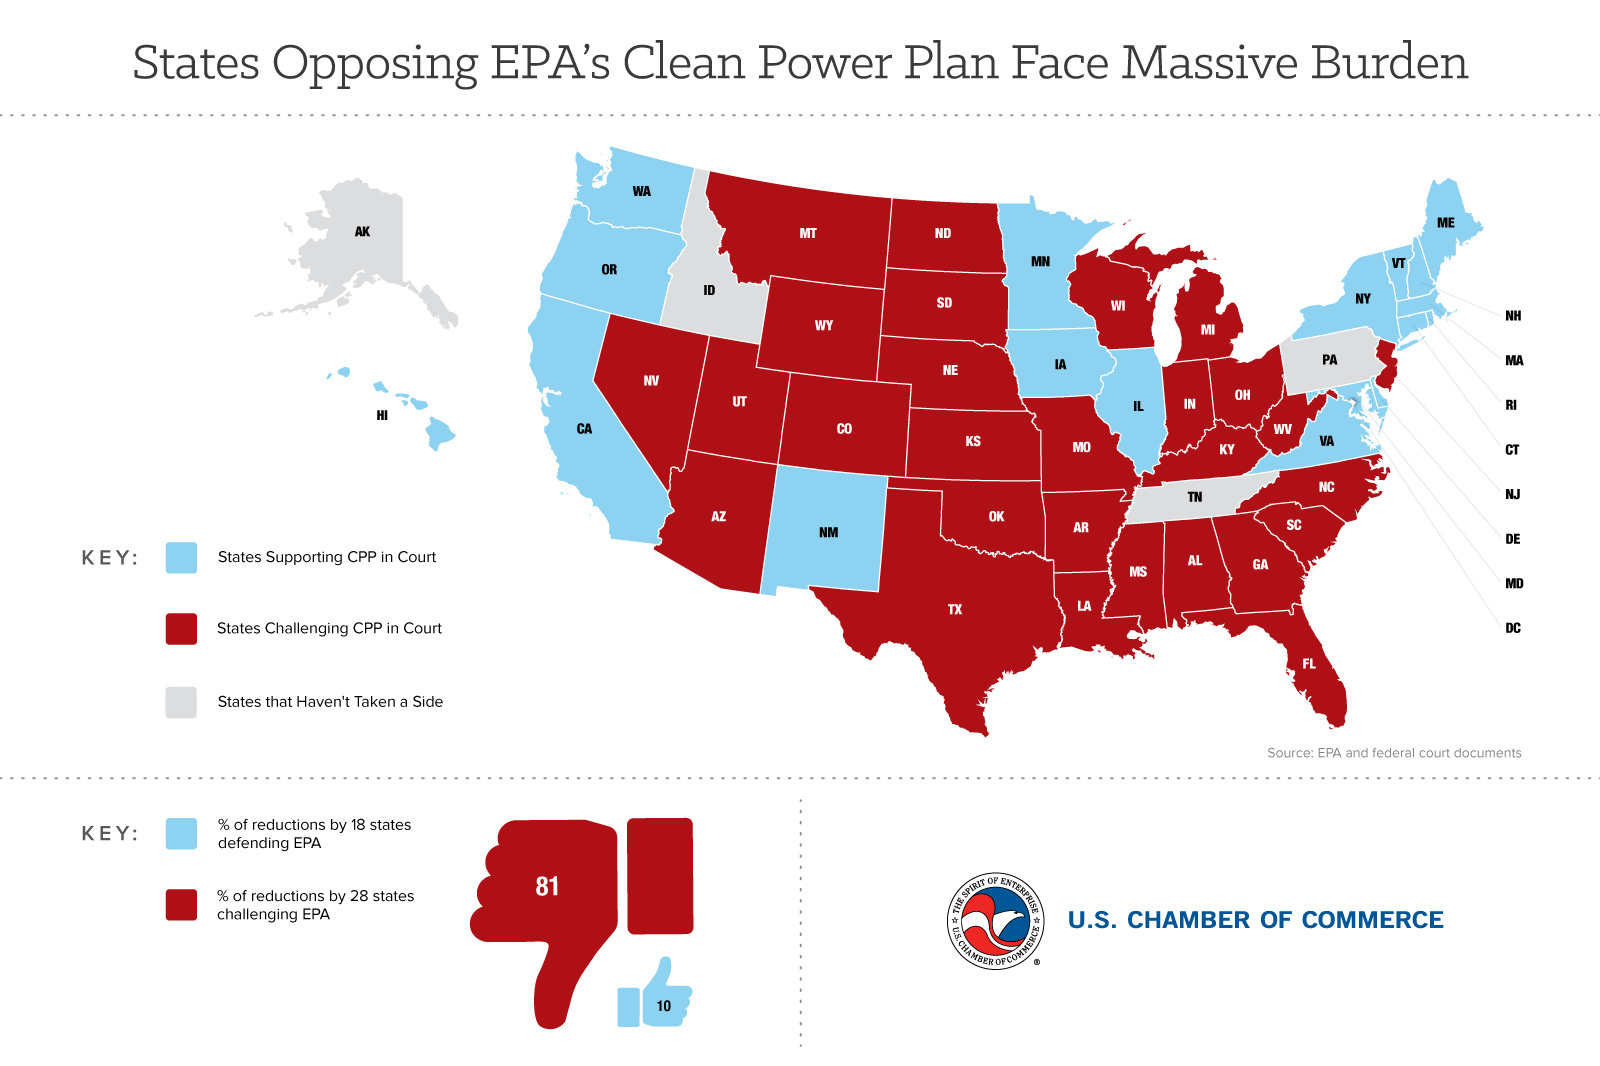 an analysis of the clean power plan cpp as an ineffective way to reduce our nations carbon emission Our ambitions are immodest: we seek to double the rates of both a electricity growth in poor nations and b new clean energy generation globally by 2025 our strategy is to build a grassroots social movement capable of changing minds and policies.